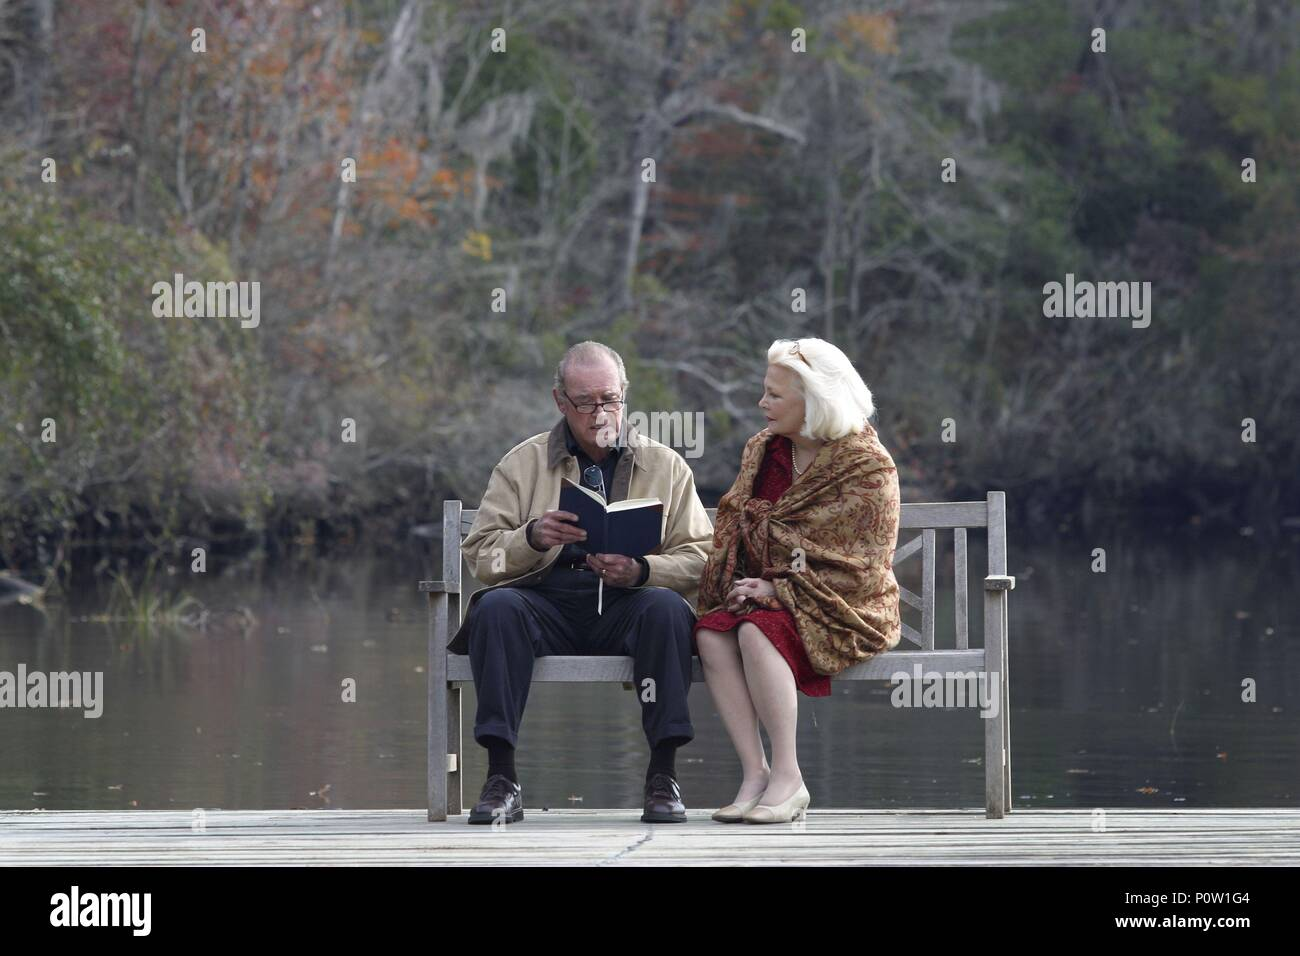 Original Film Title: THE NOTEBOOK.  English Title: THE NOTEBOOK.  Film Director: NICK CASSAVETES.  Year: 2004.  Stars: JAMES GARNER; GENA ROWLANDS. Credit: NEW LINE CINEMA / MOSELEY, MELISSA / Album - Stock Image